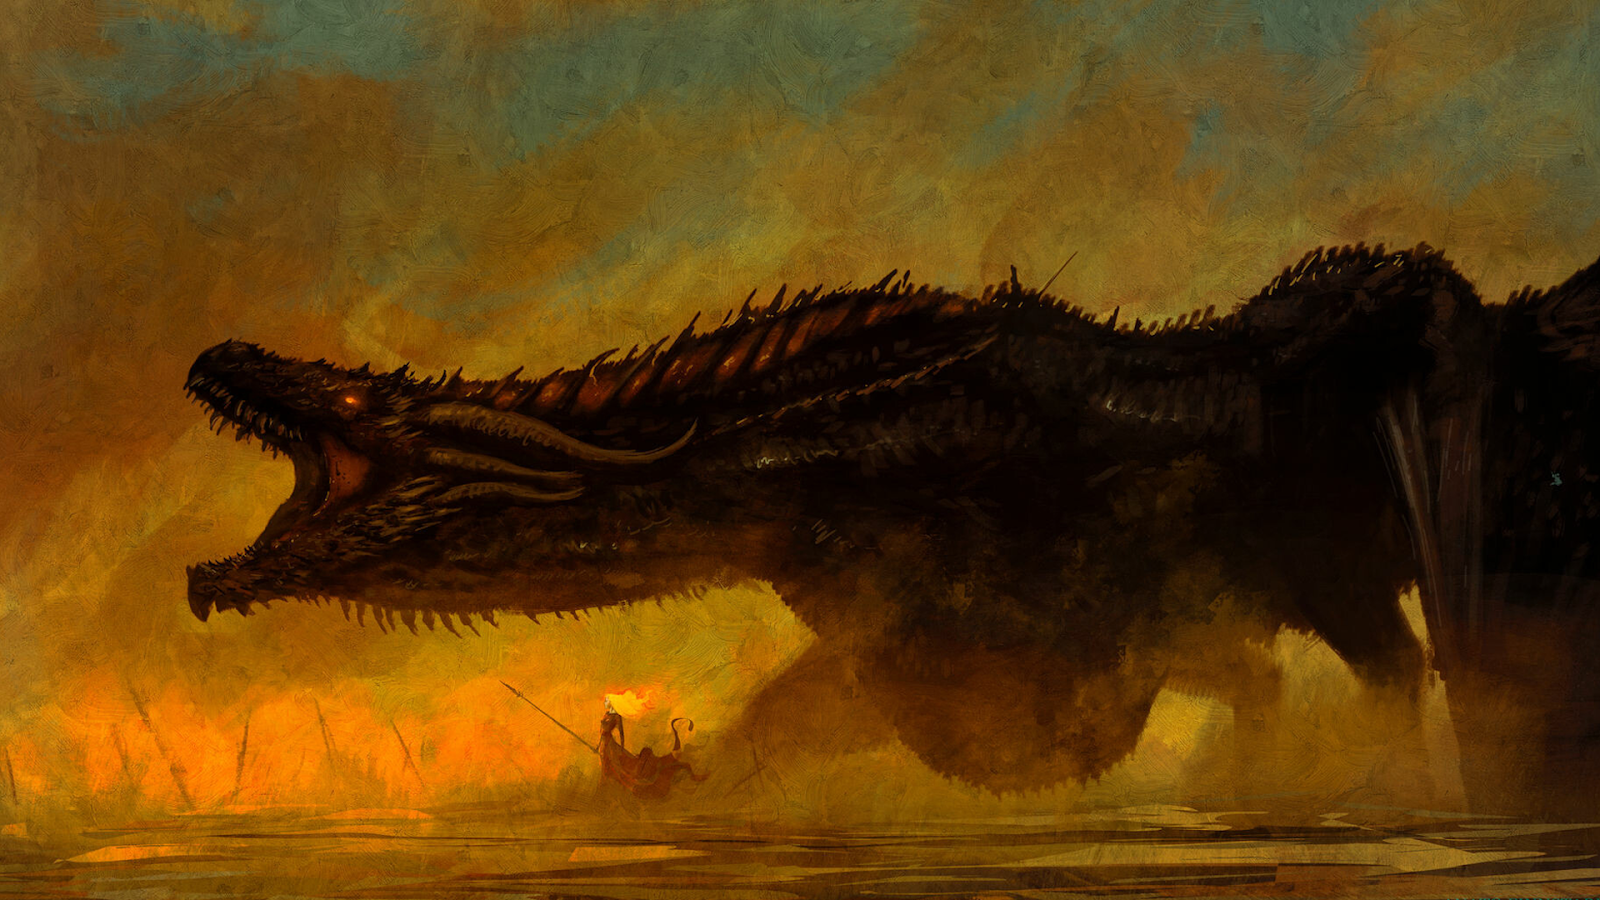 dragon drogon game of thrones